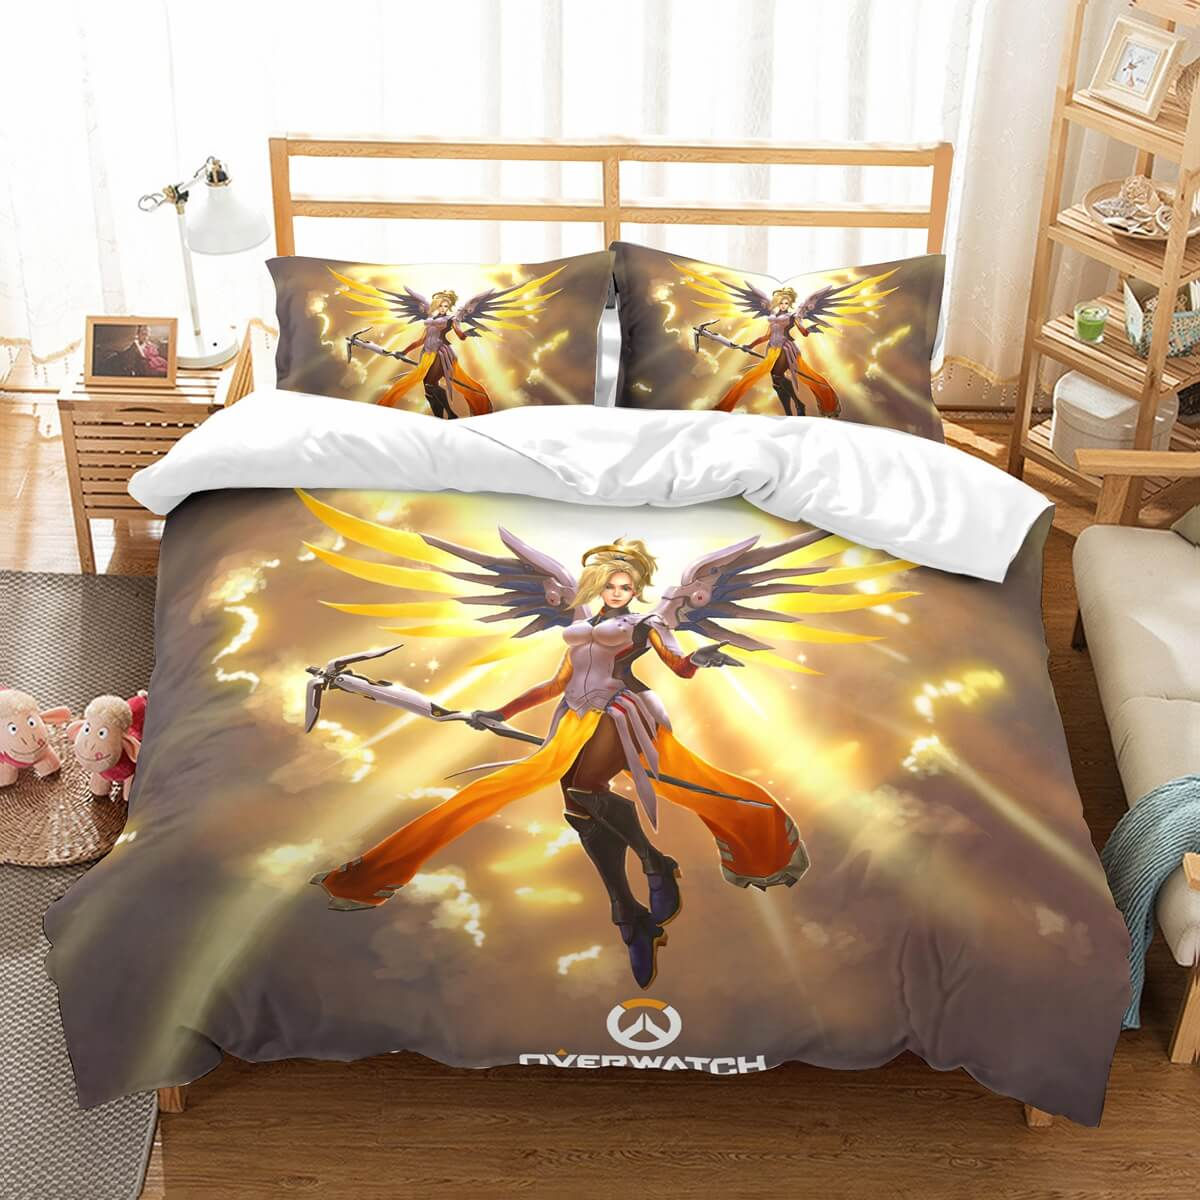 3D Customize Overwatch Mercy Bedding Set Duvet Cover Set Bedroom Set Bedlinen